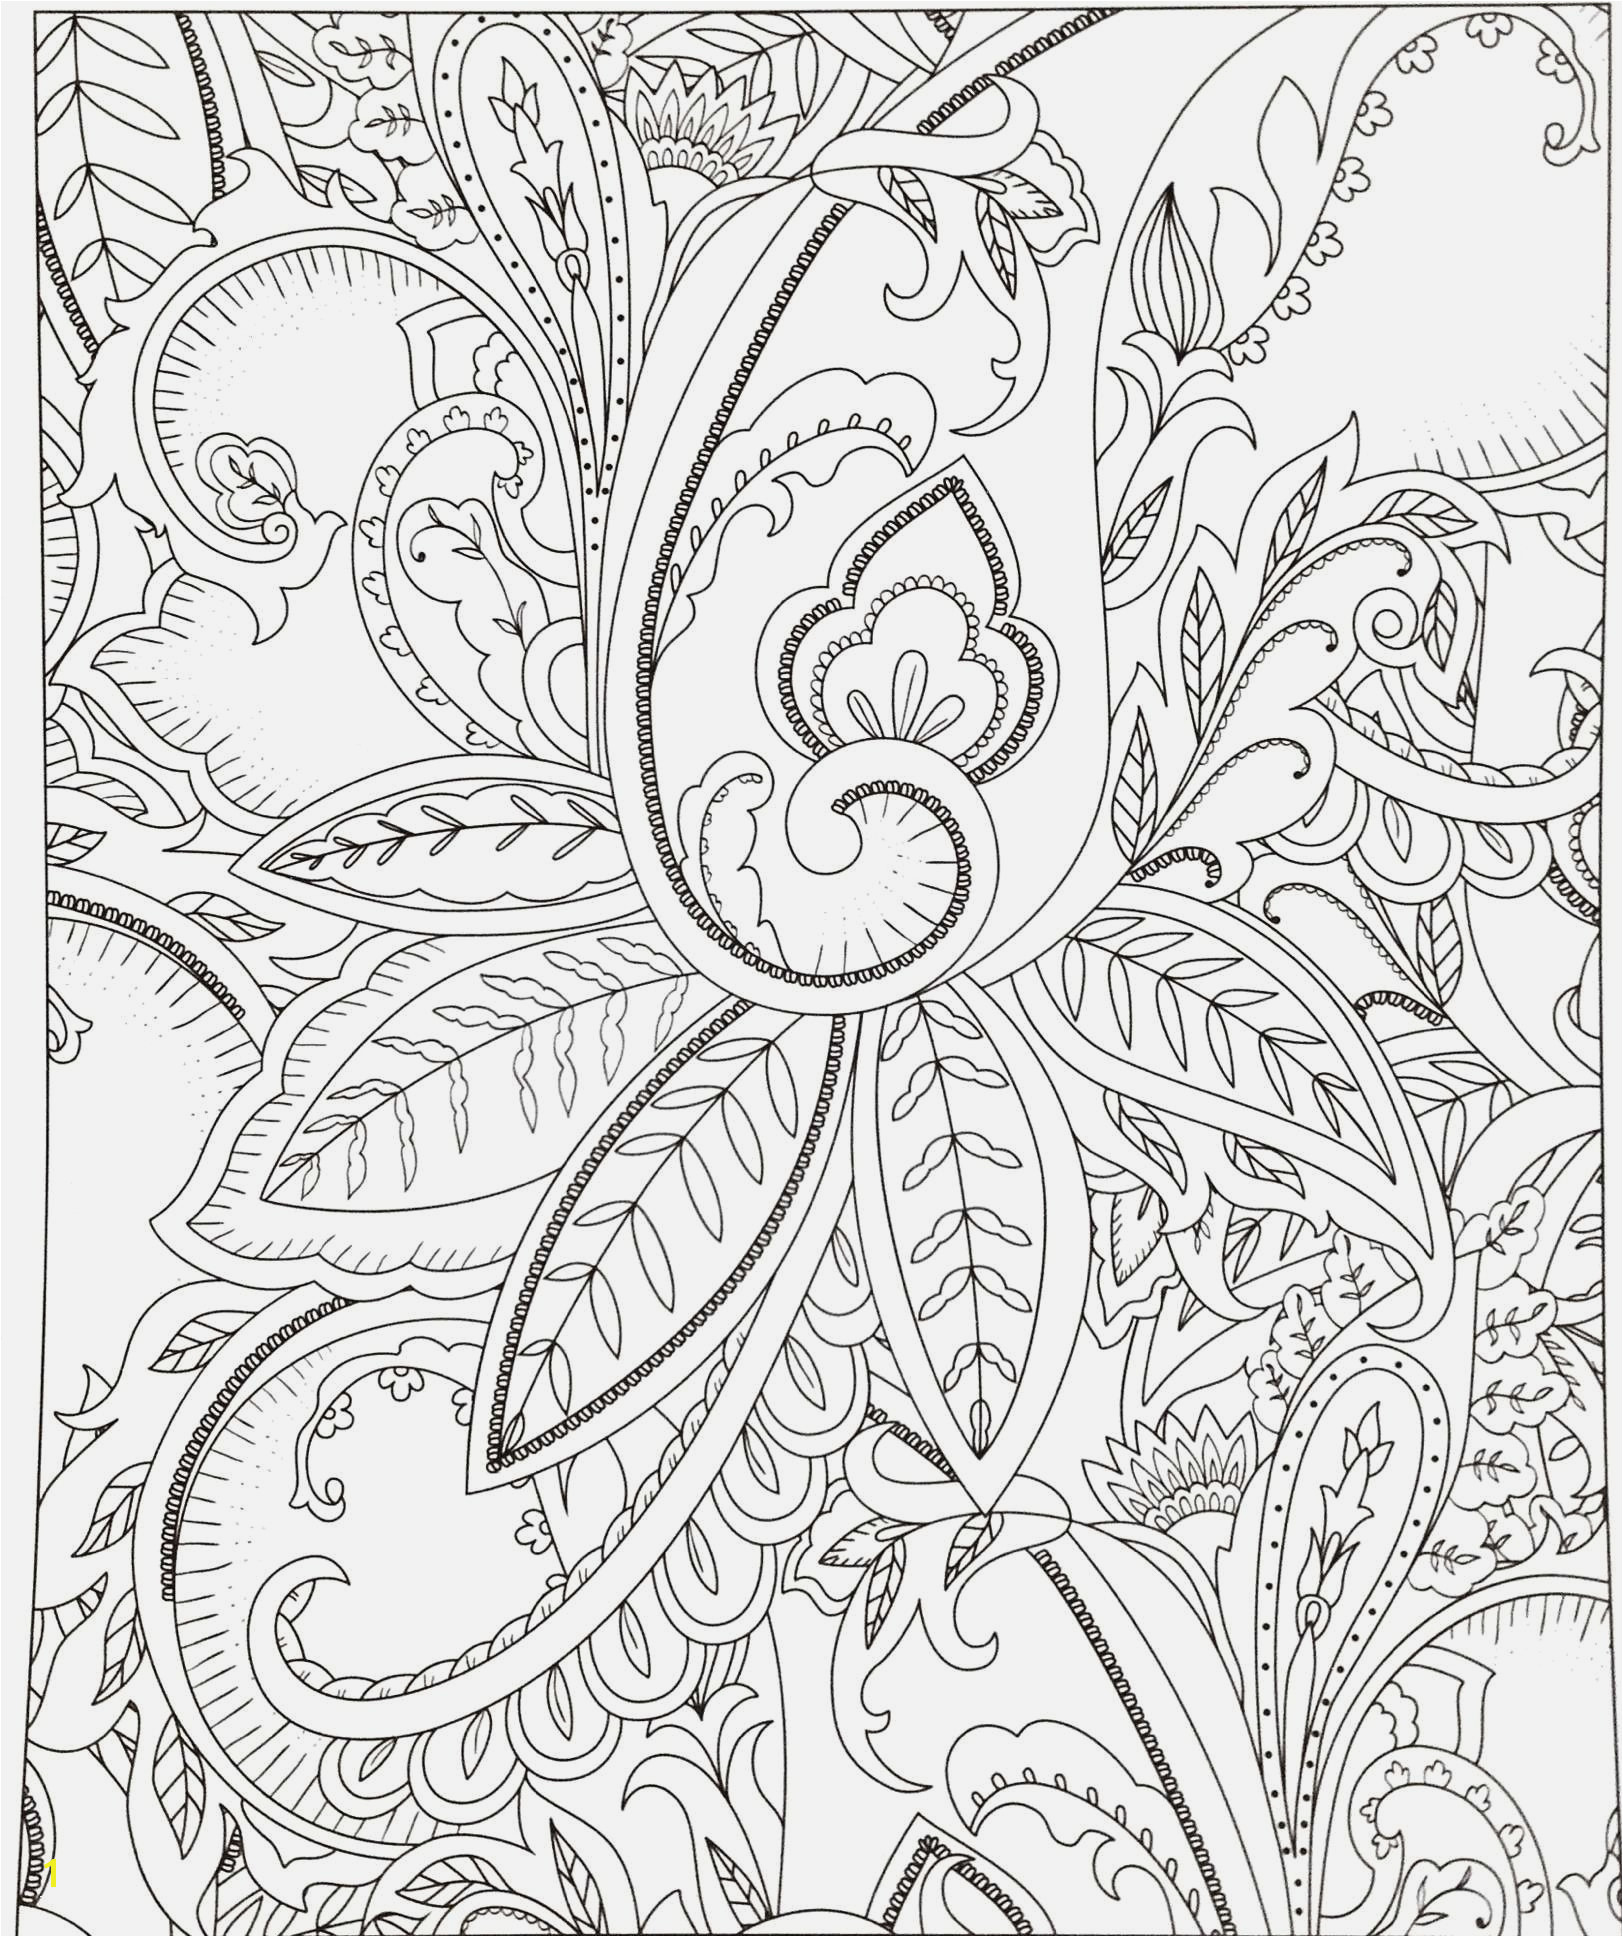 Pokemon Card Coloring Pages Free Printable Printable Christmas Cards Coloring Pages